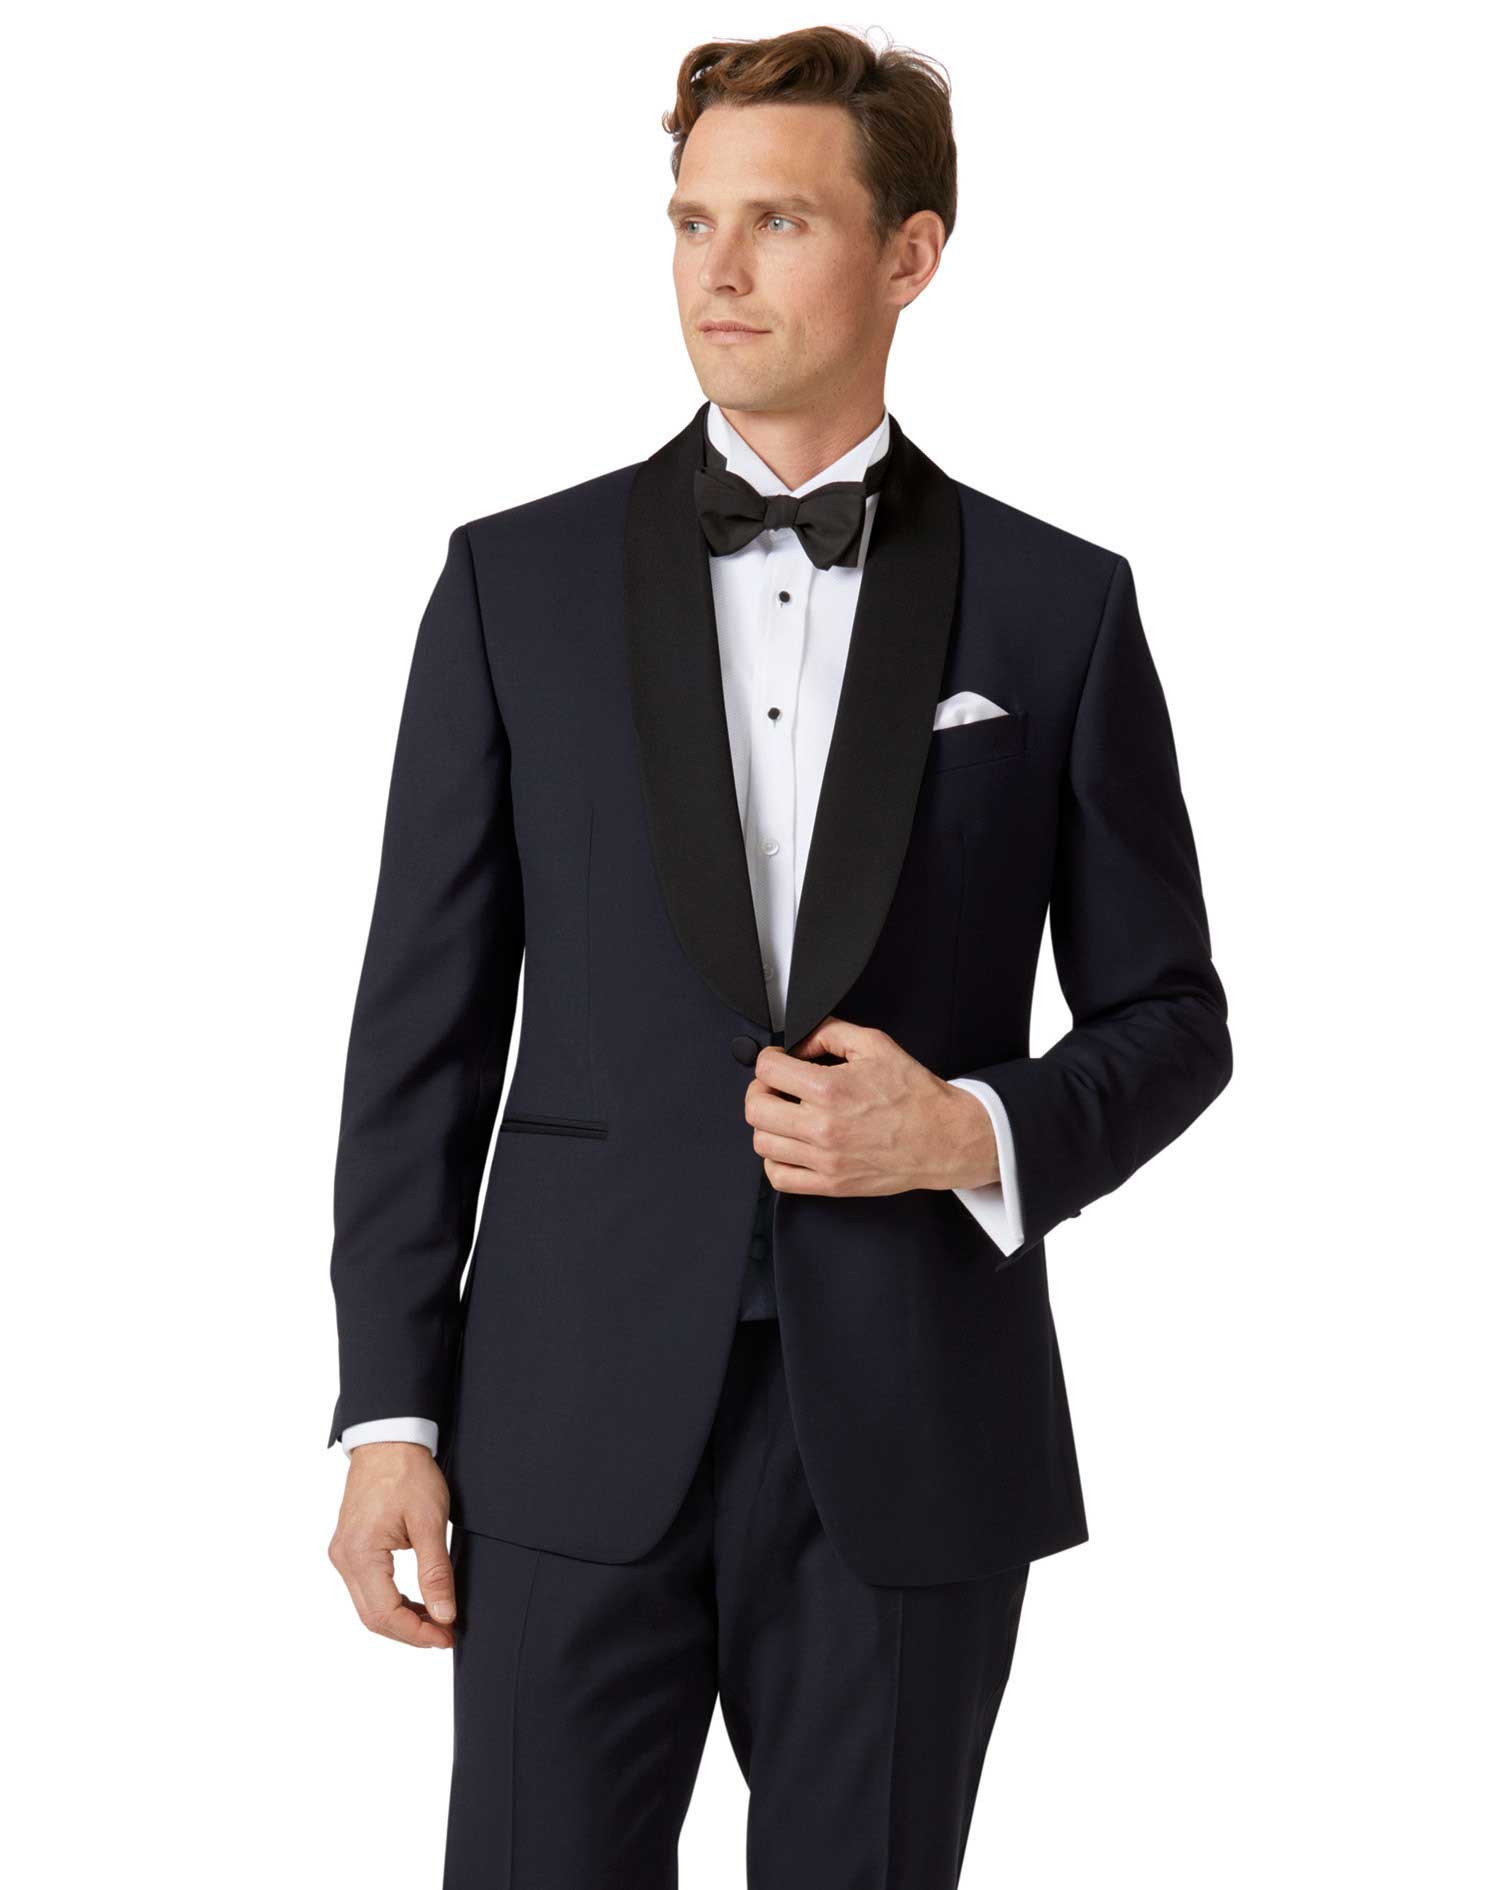 New Vintage Tuxedos, Tailcoats, Morning Suits, Dinner Jackets Midnight Blue Slim Fit Shawl Collar Tuxedo Wool Jacket Size 44 Short by Charles Tyrwhitt £199.95 AT vintagedancer.com